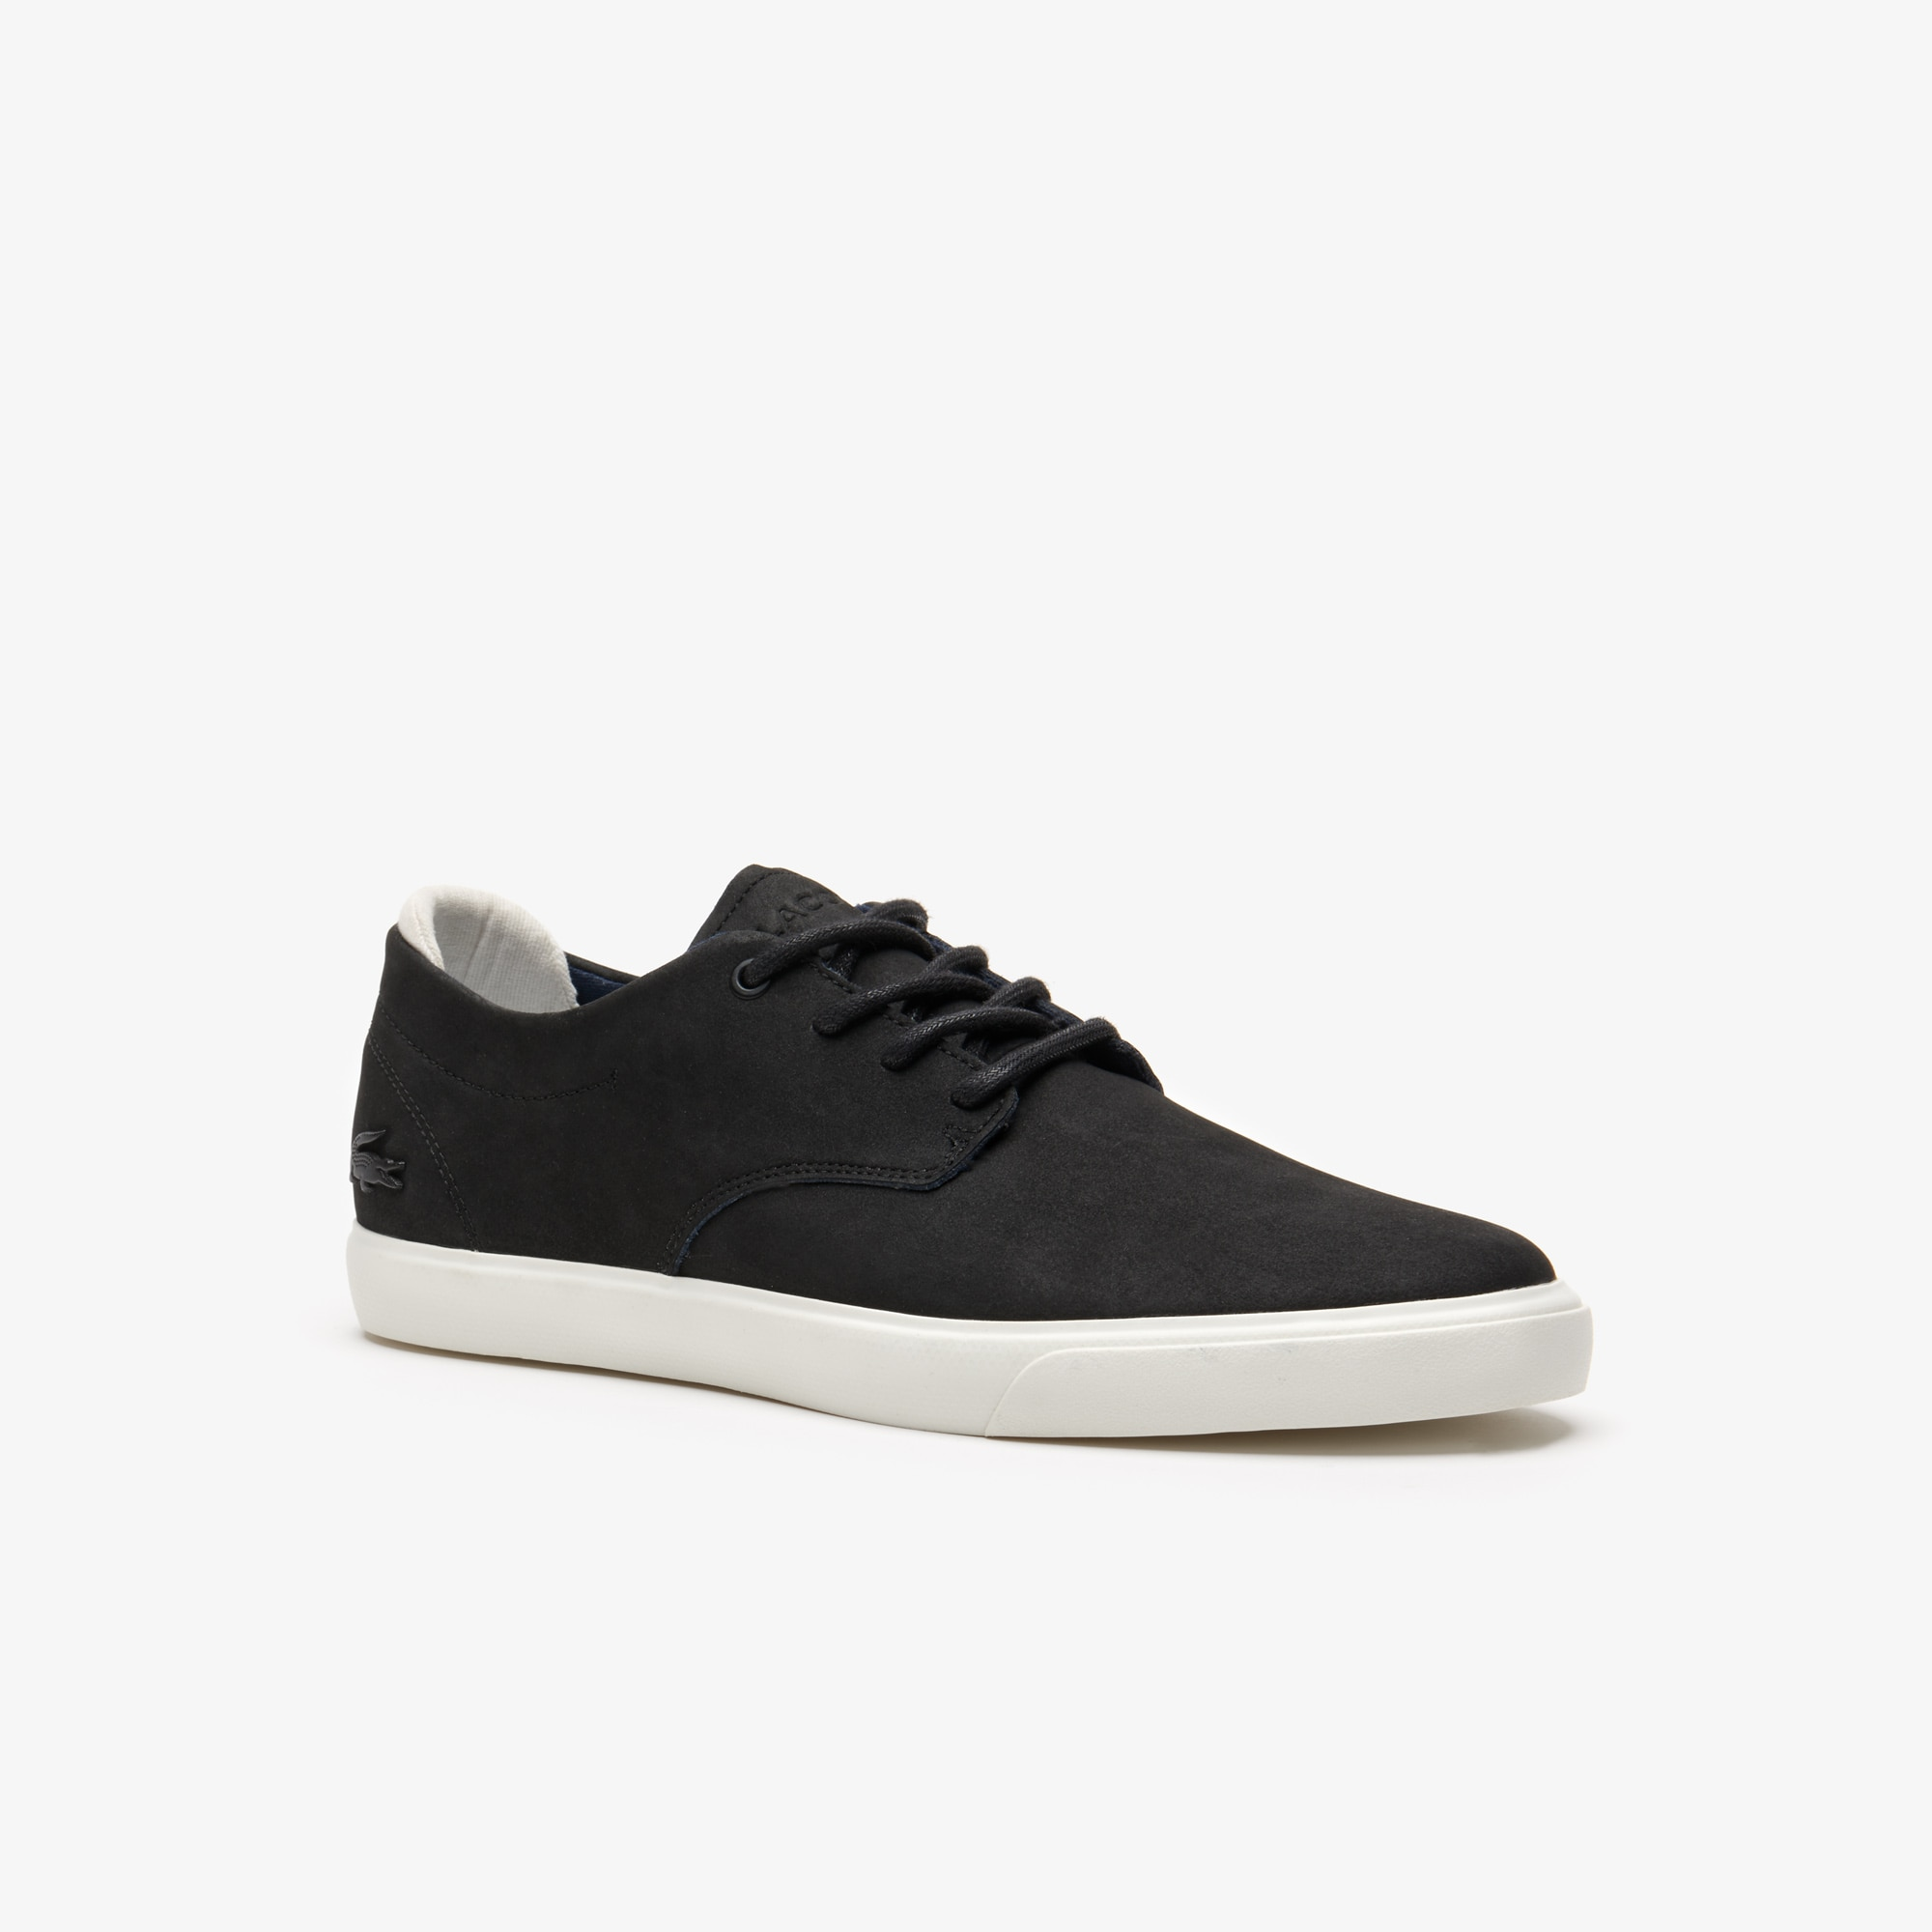 584485648a Chaussures en toile | Chaussures Homme | LACOSTE